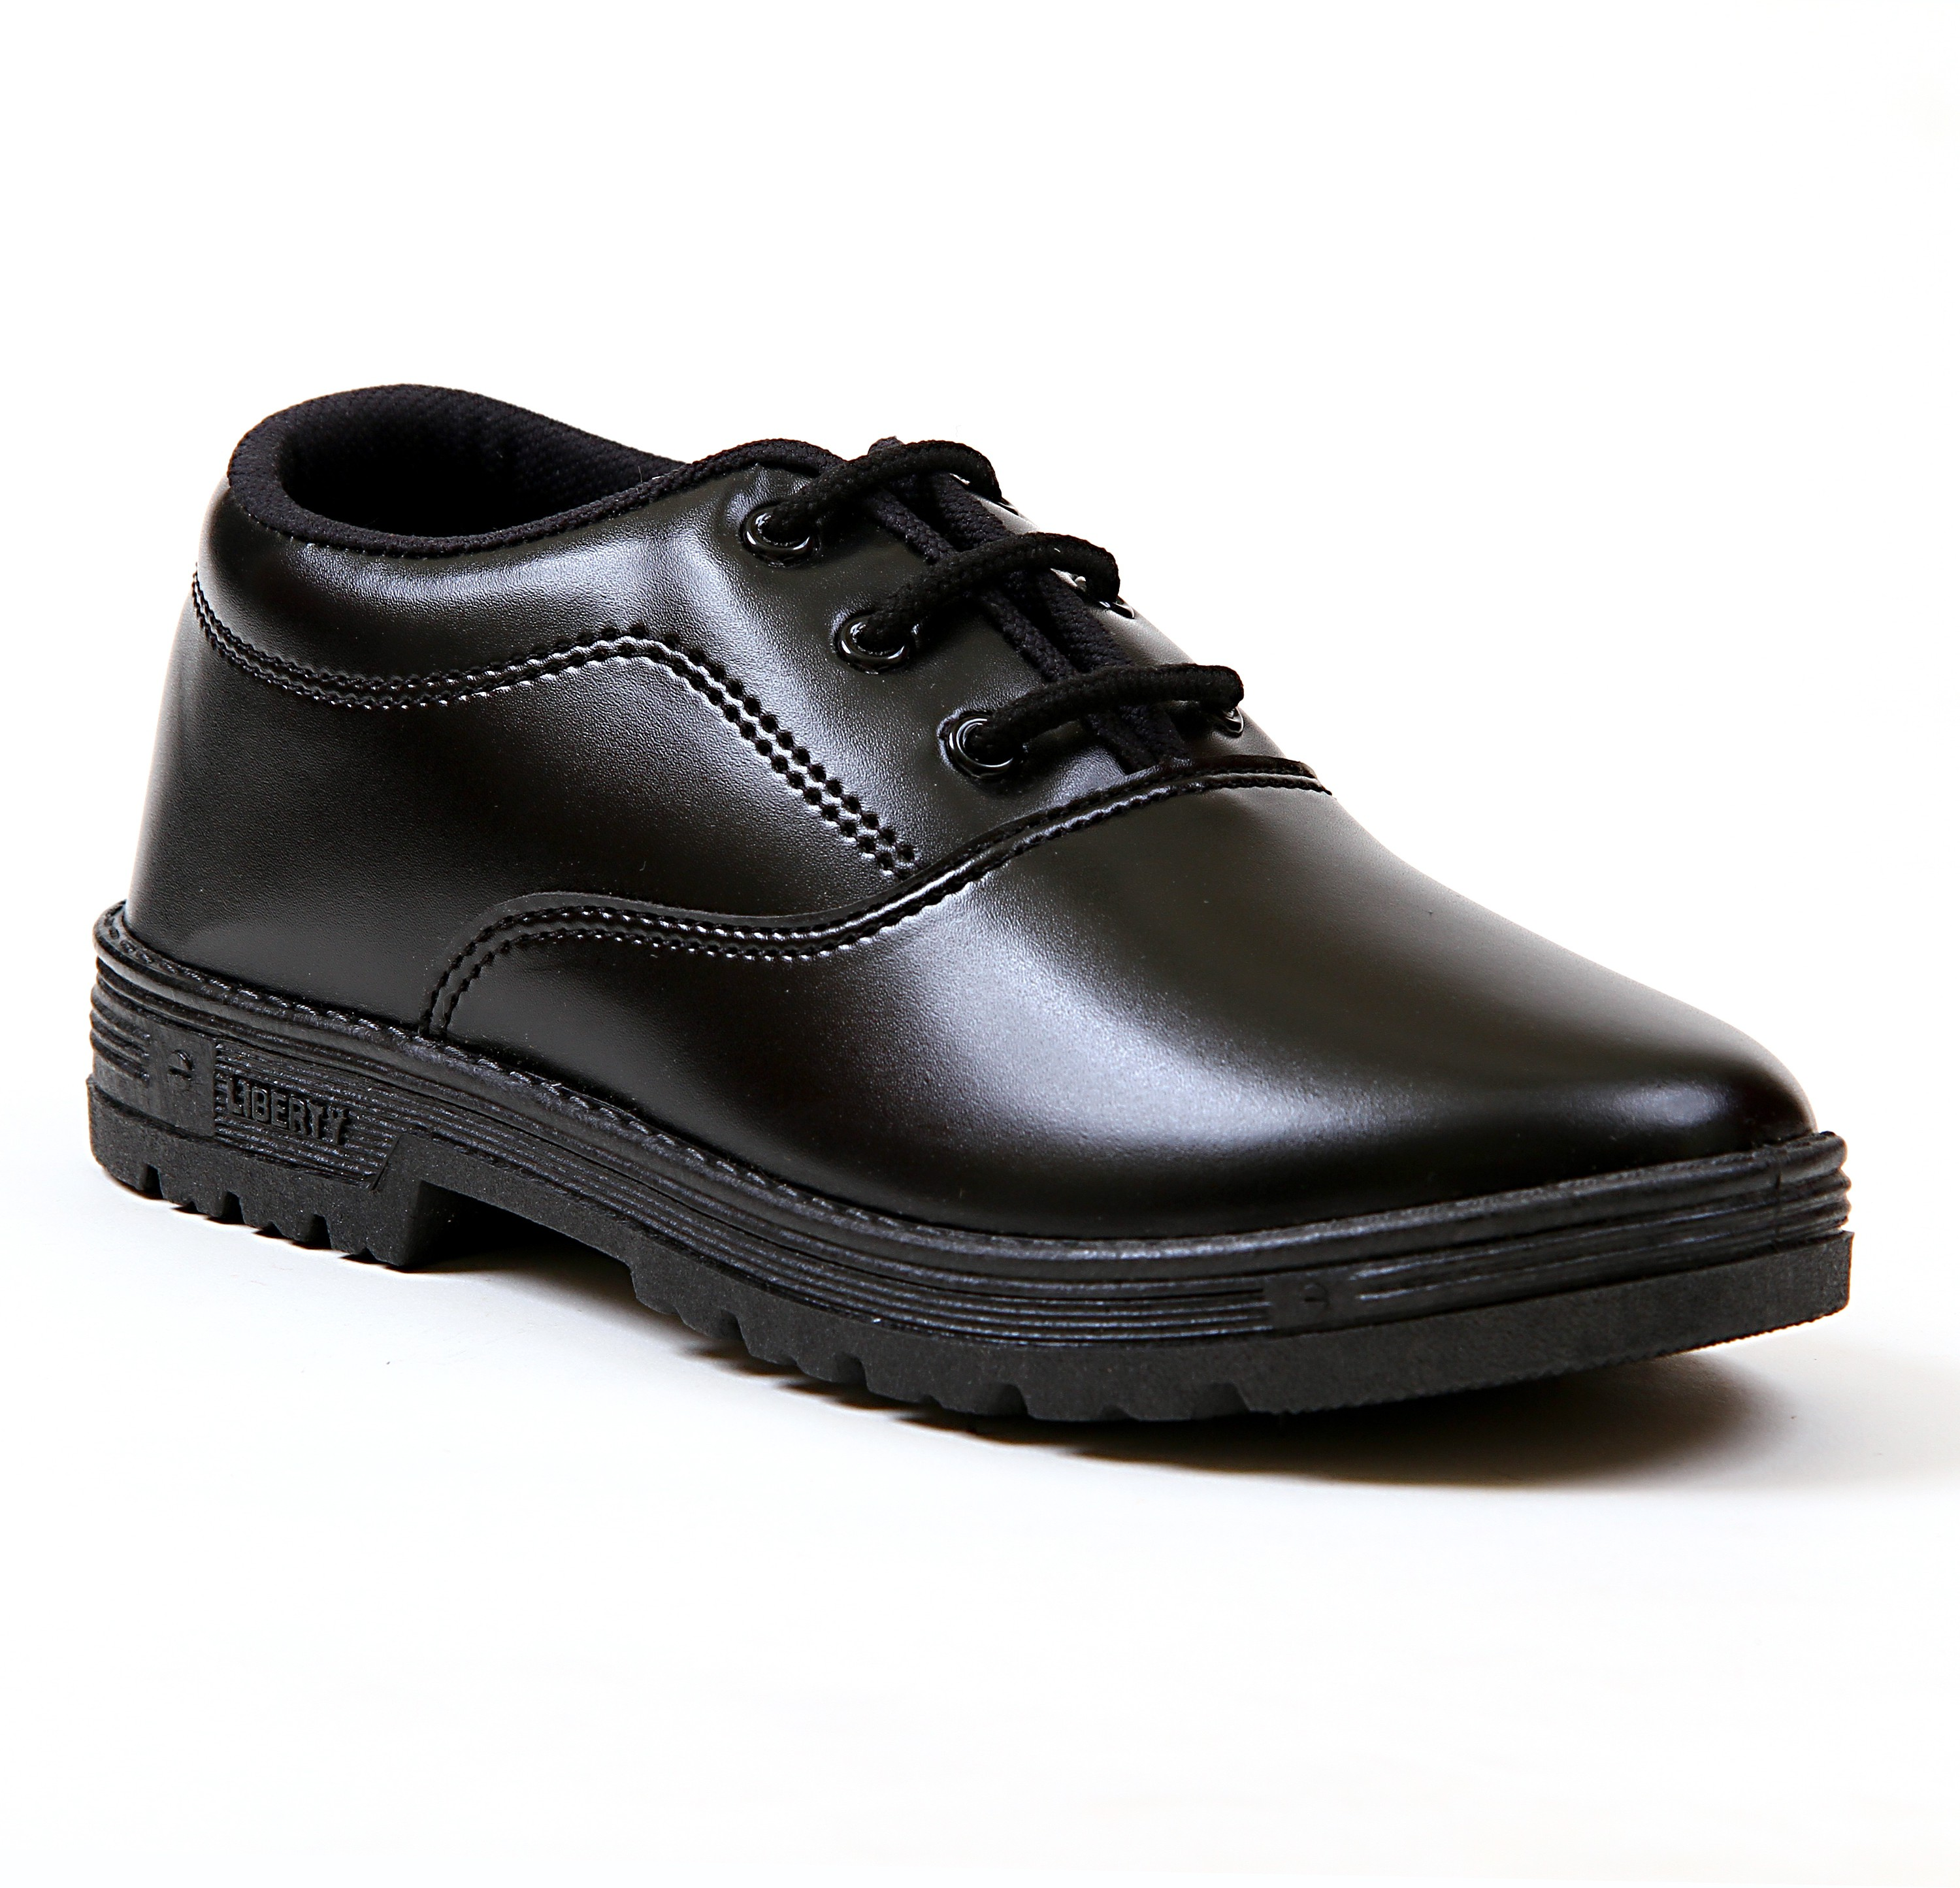 Deals | School Shoes Bata, Liberty...